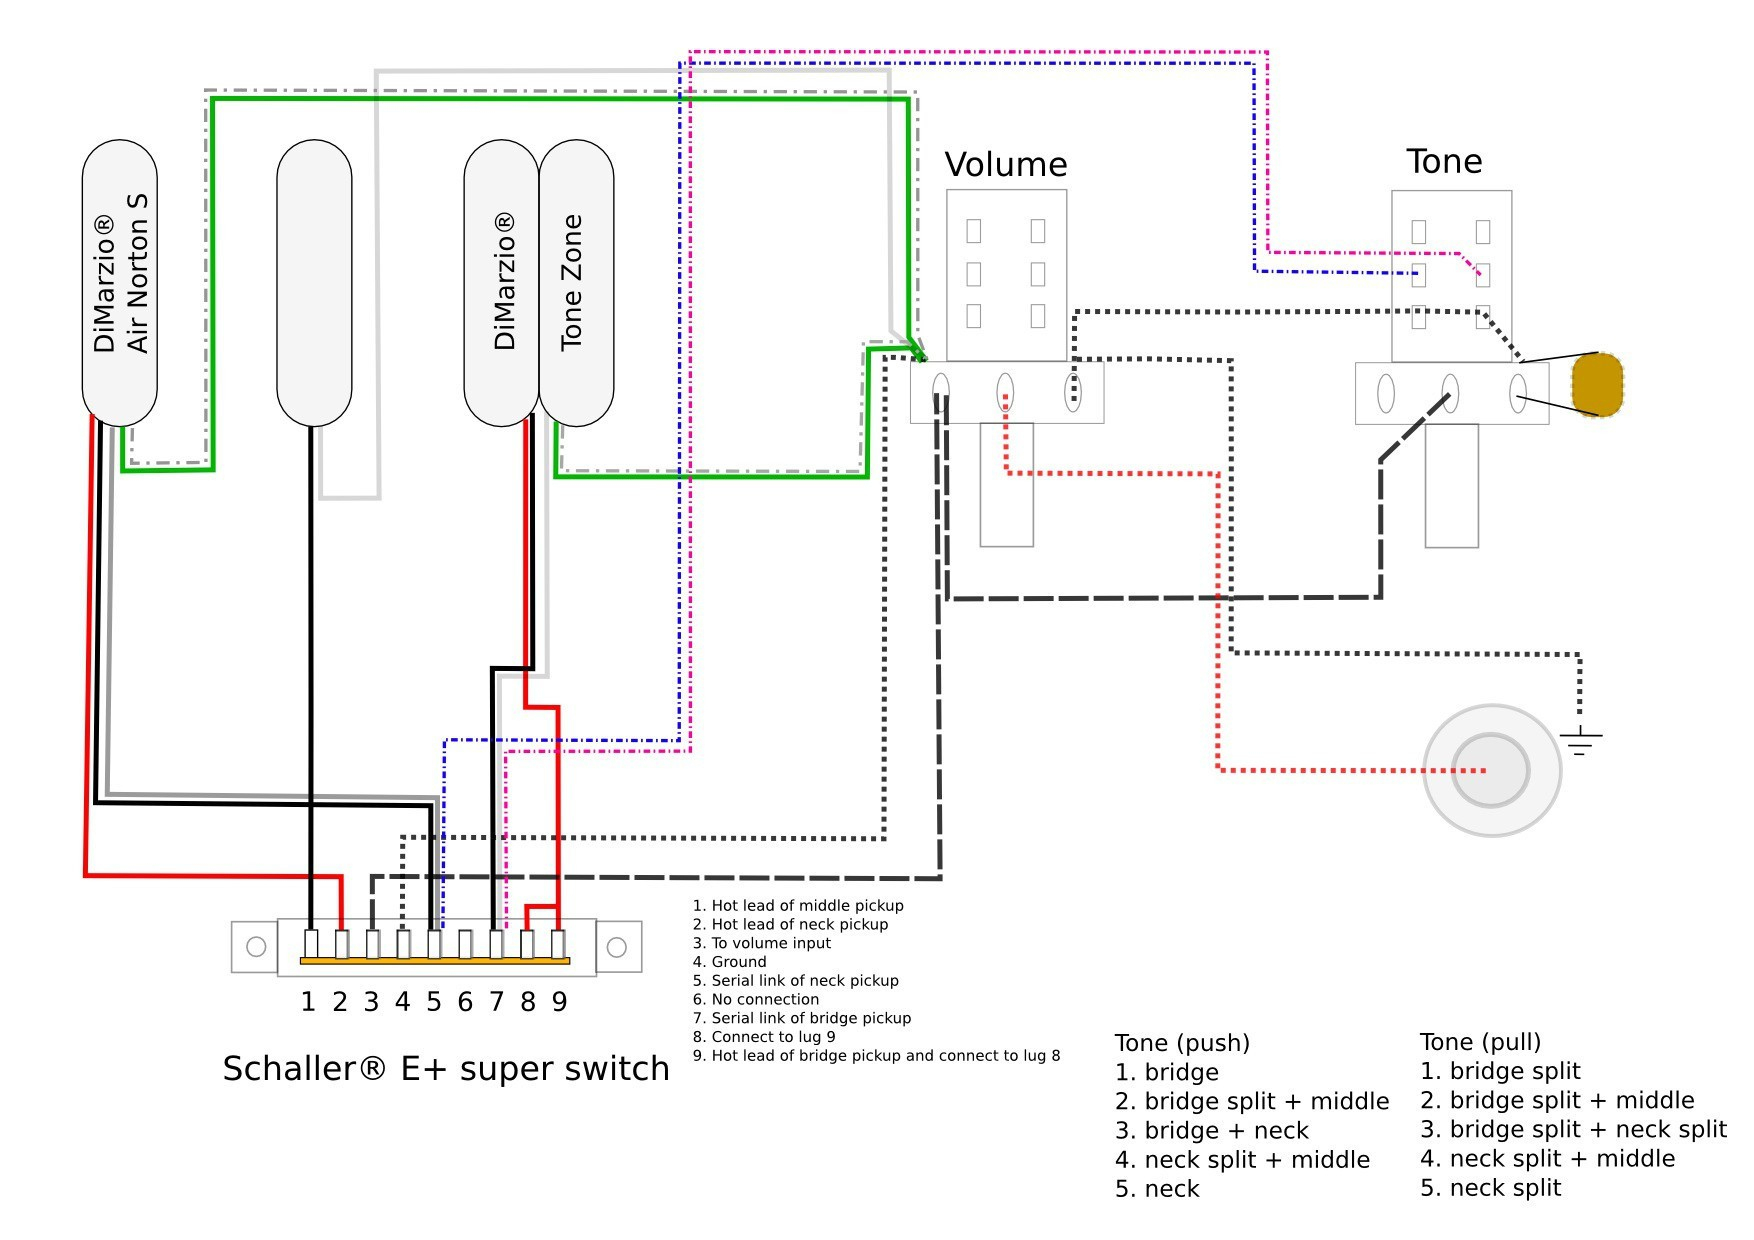 Wiring Diagram Prime Hsh 5 Way Switch Inspirations Guitar Diagrams 2 - Dimarzio Wiring Diagram